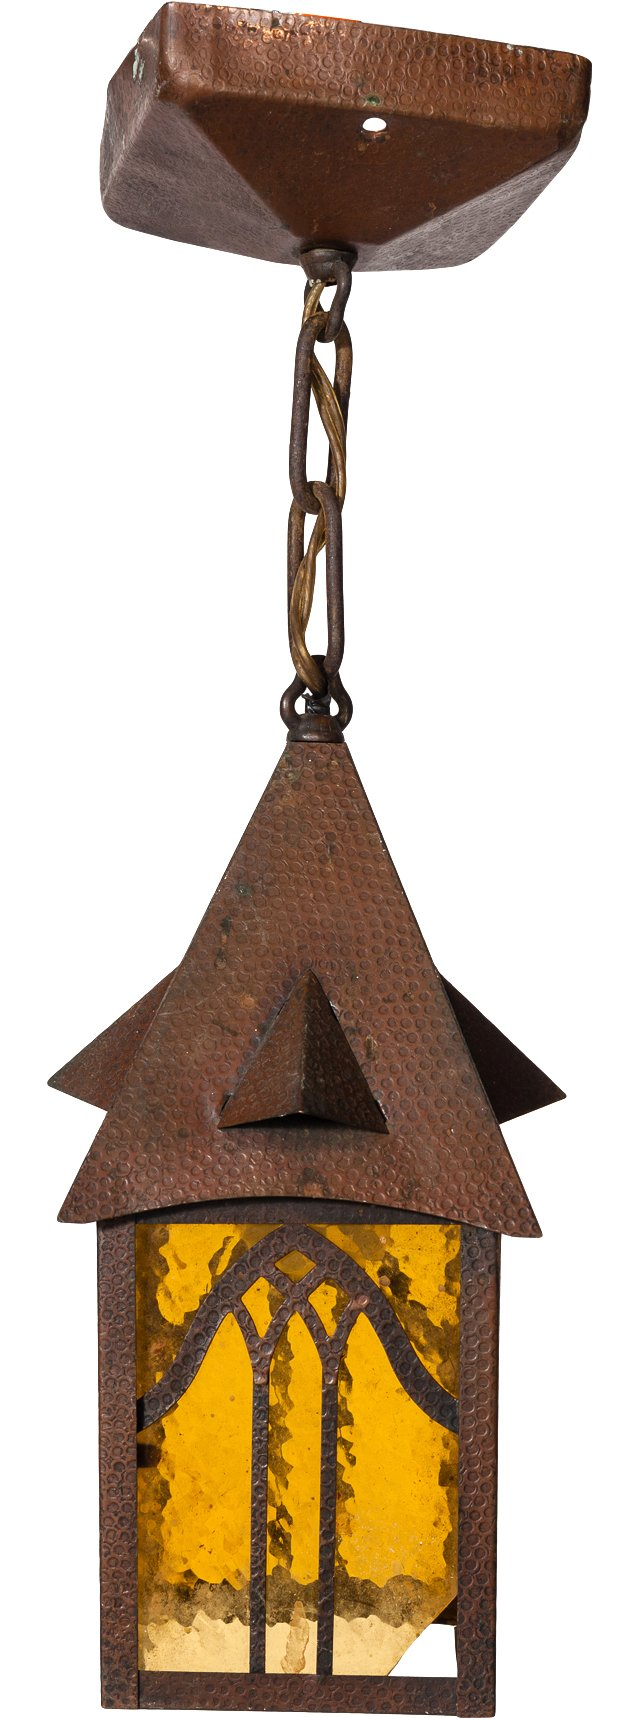 Small Pointed Hanging Light